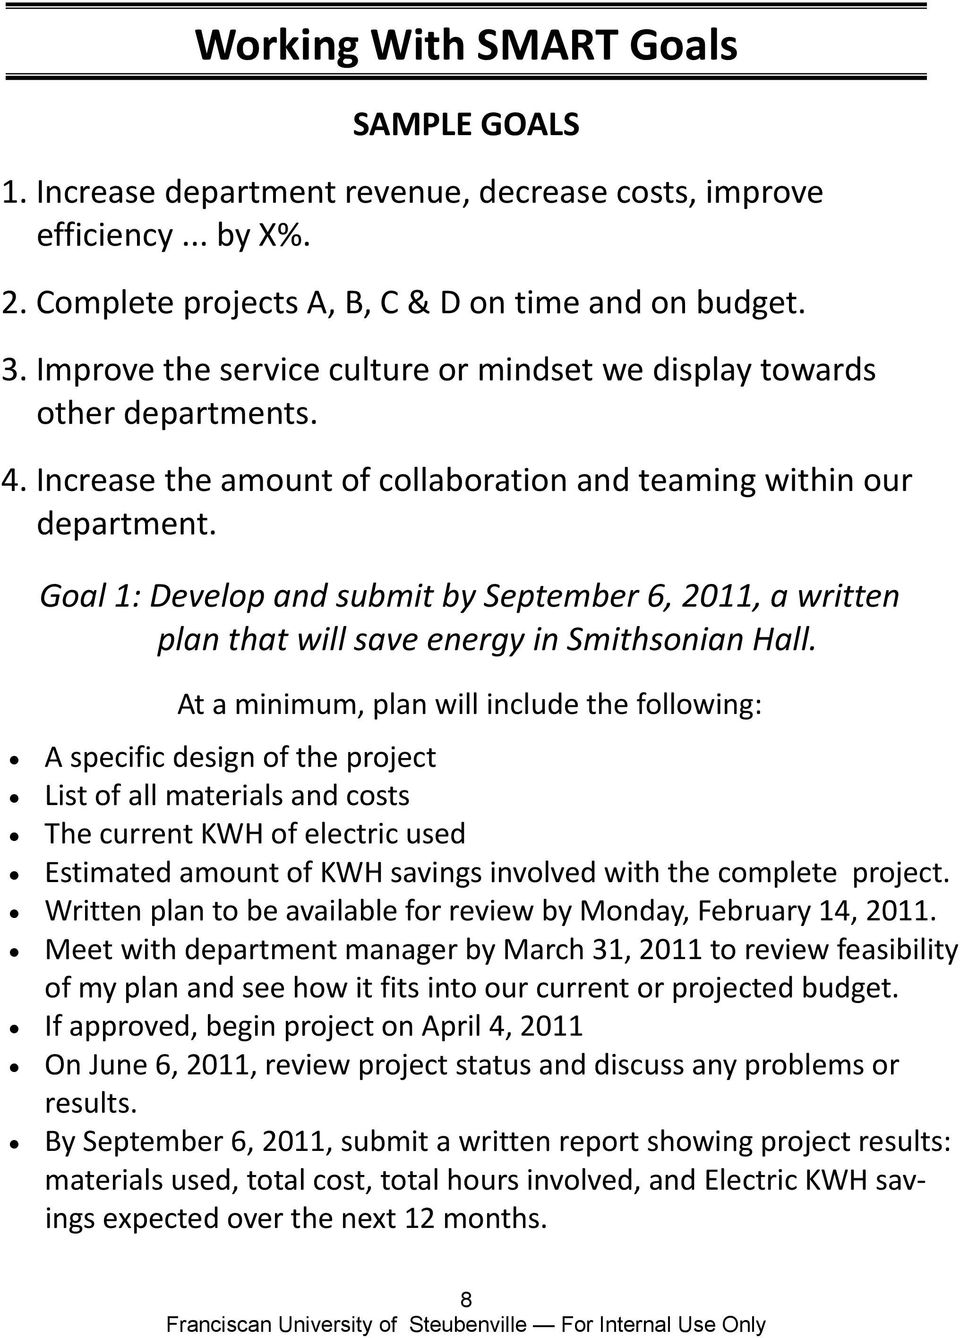 Goal 1: Develop and submit by September 6, 2011, a written plan that will save energy in Smithsonian Hall.